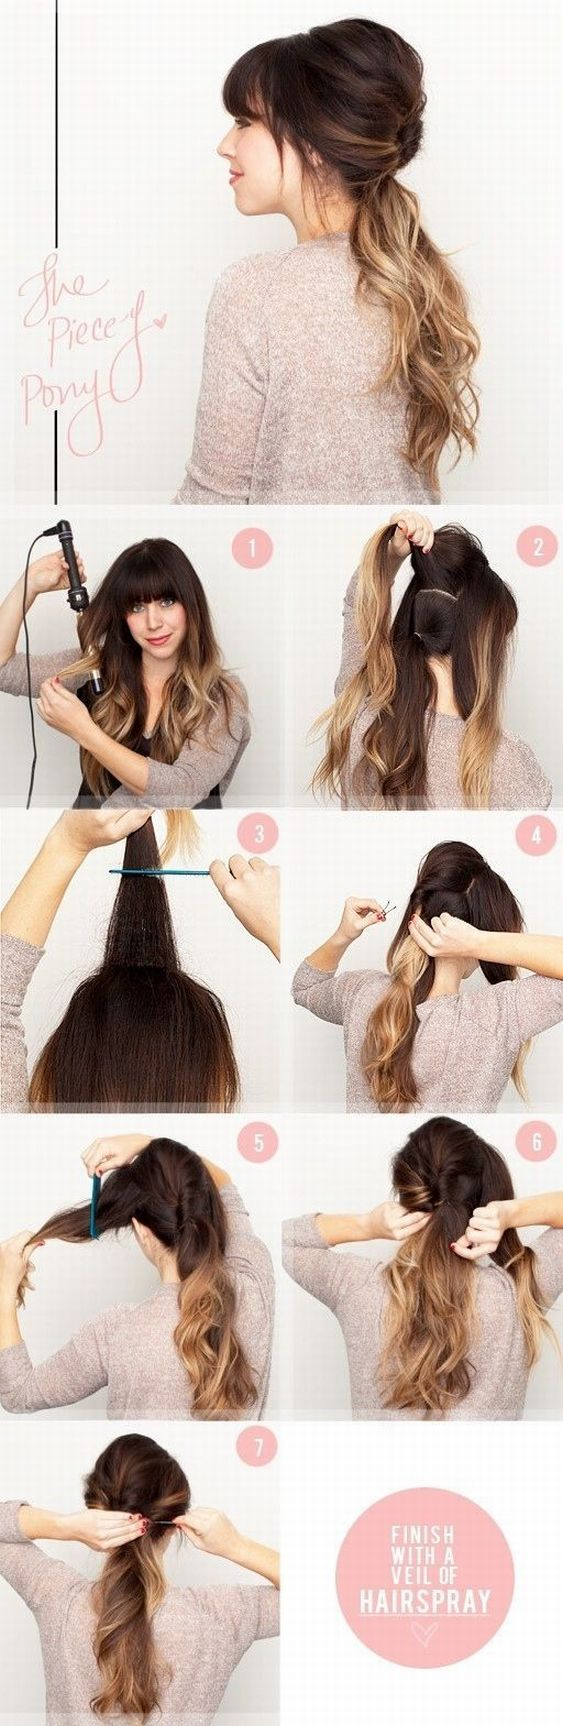 Hairstyle Tutorials (10)